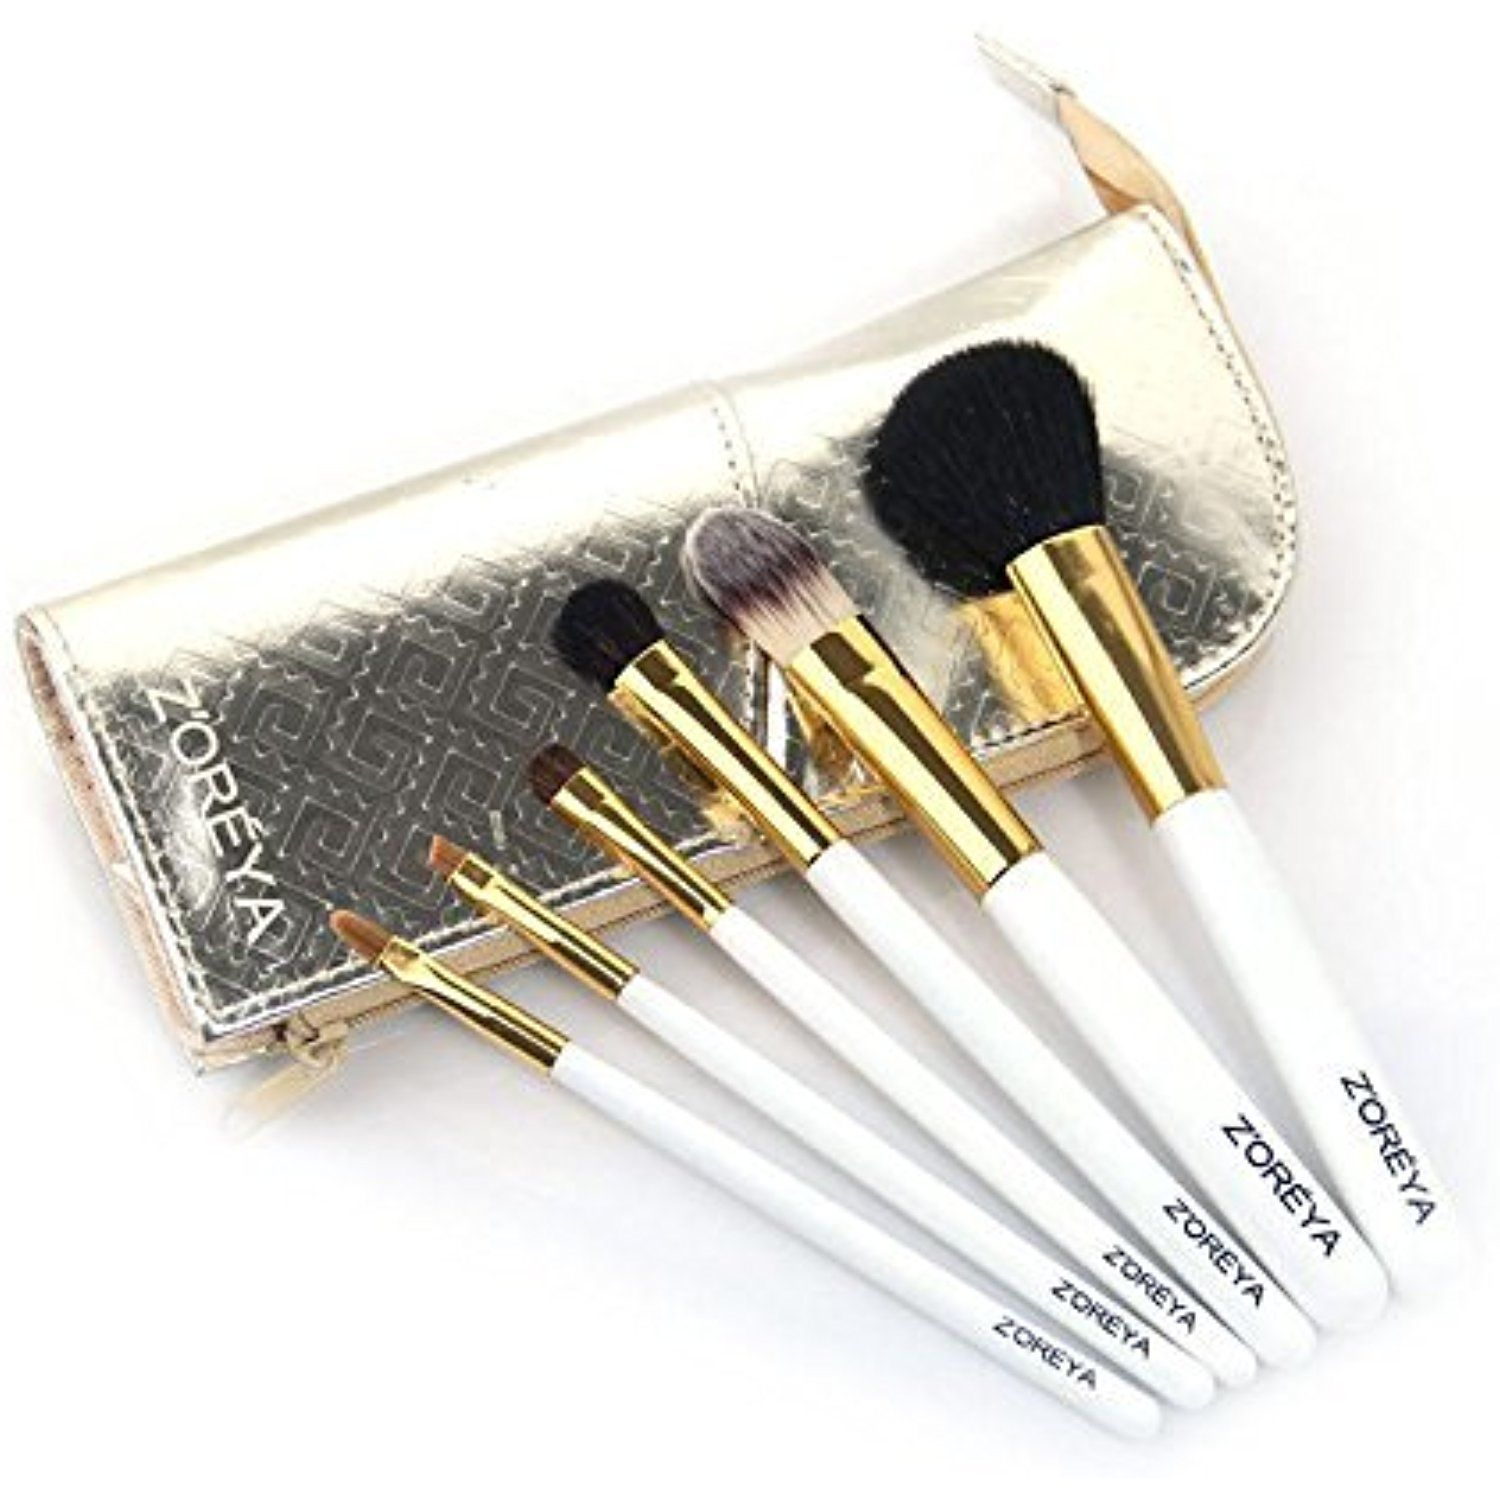 6 Pieces Makeup Brush Set Zoreya Travel Size Tools